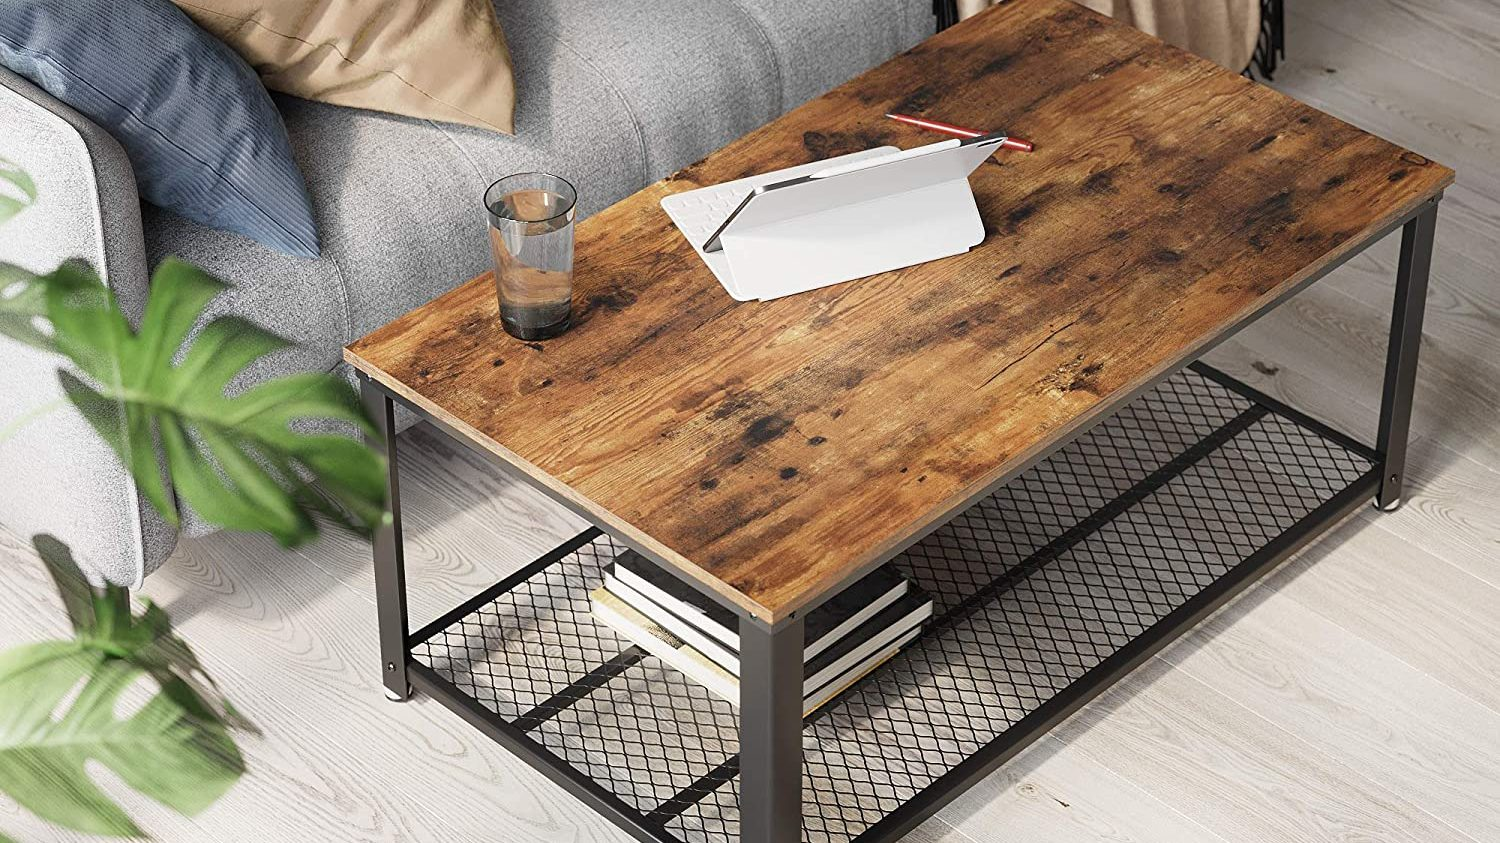 Best Table with a Shelf